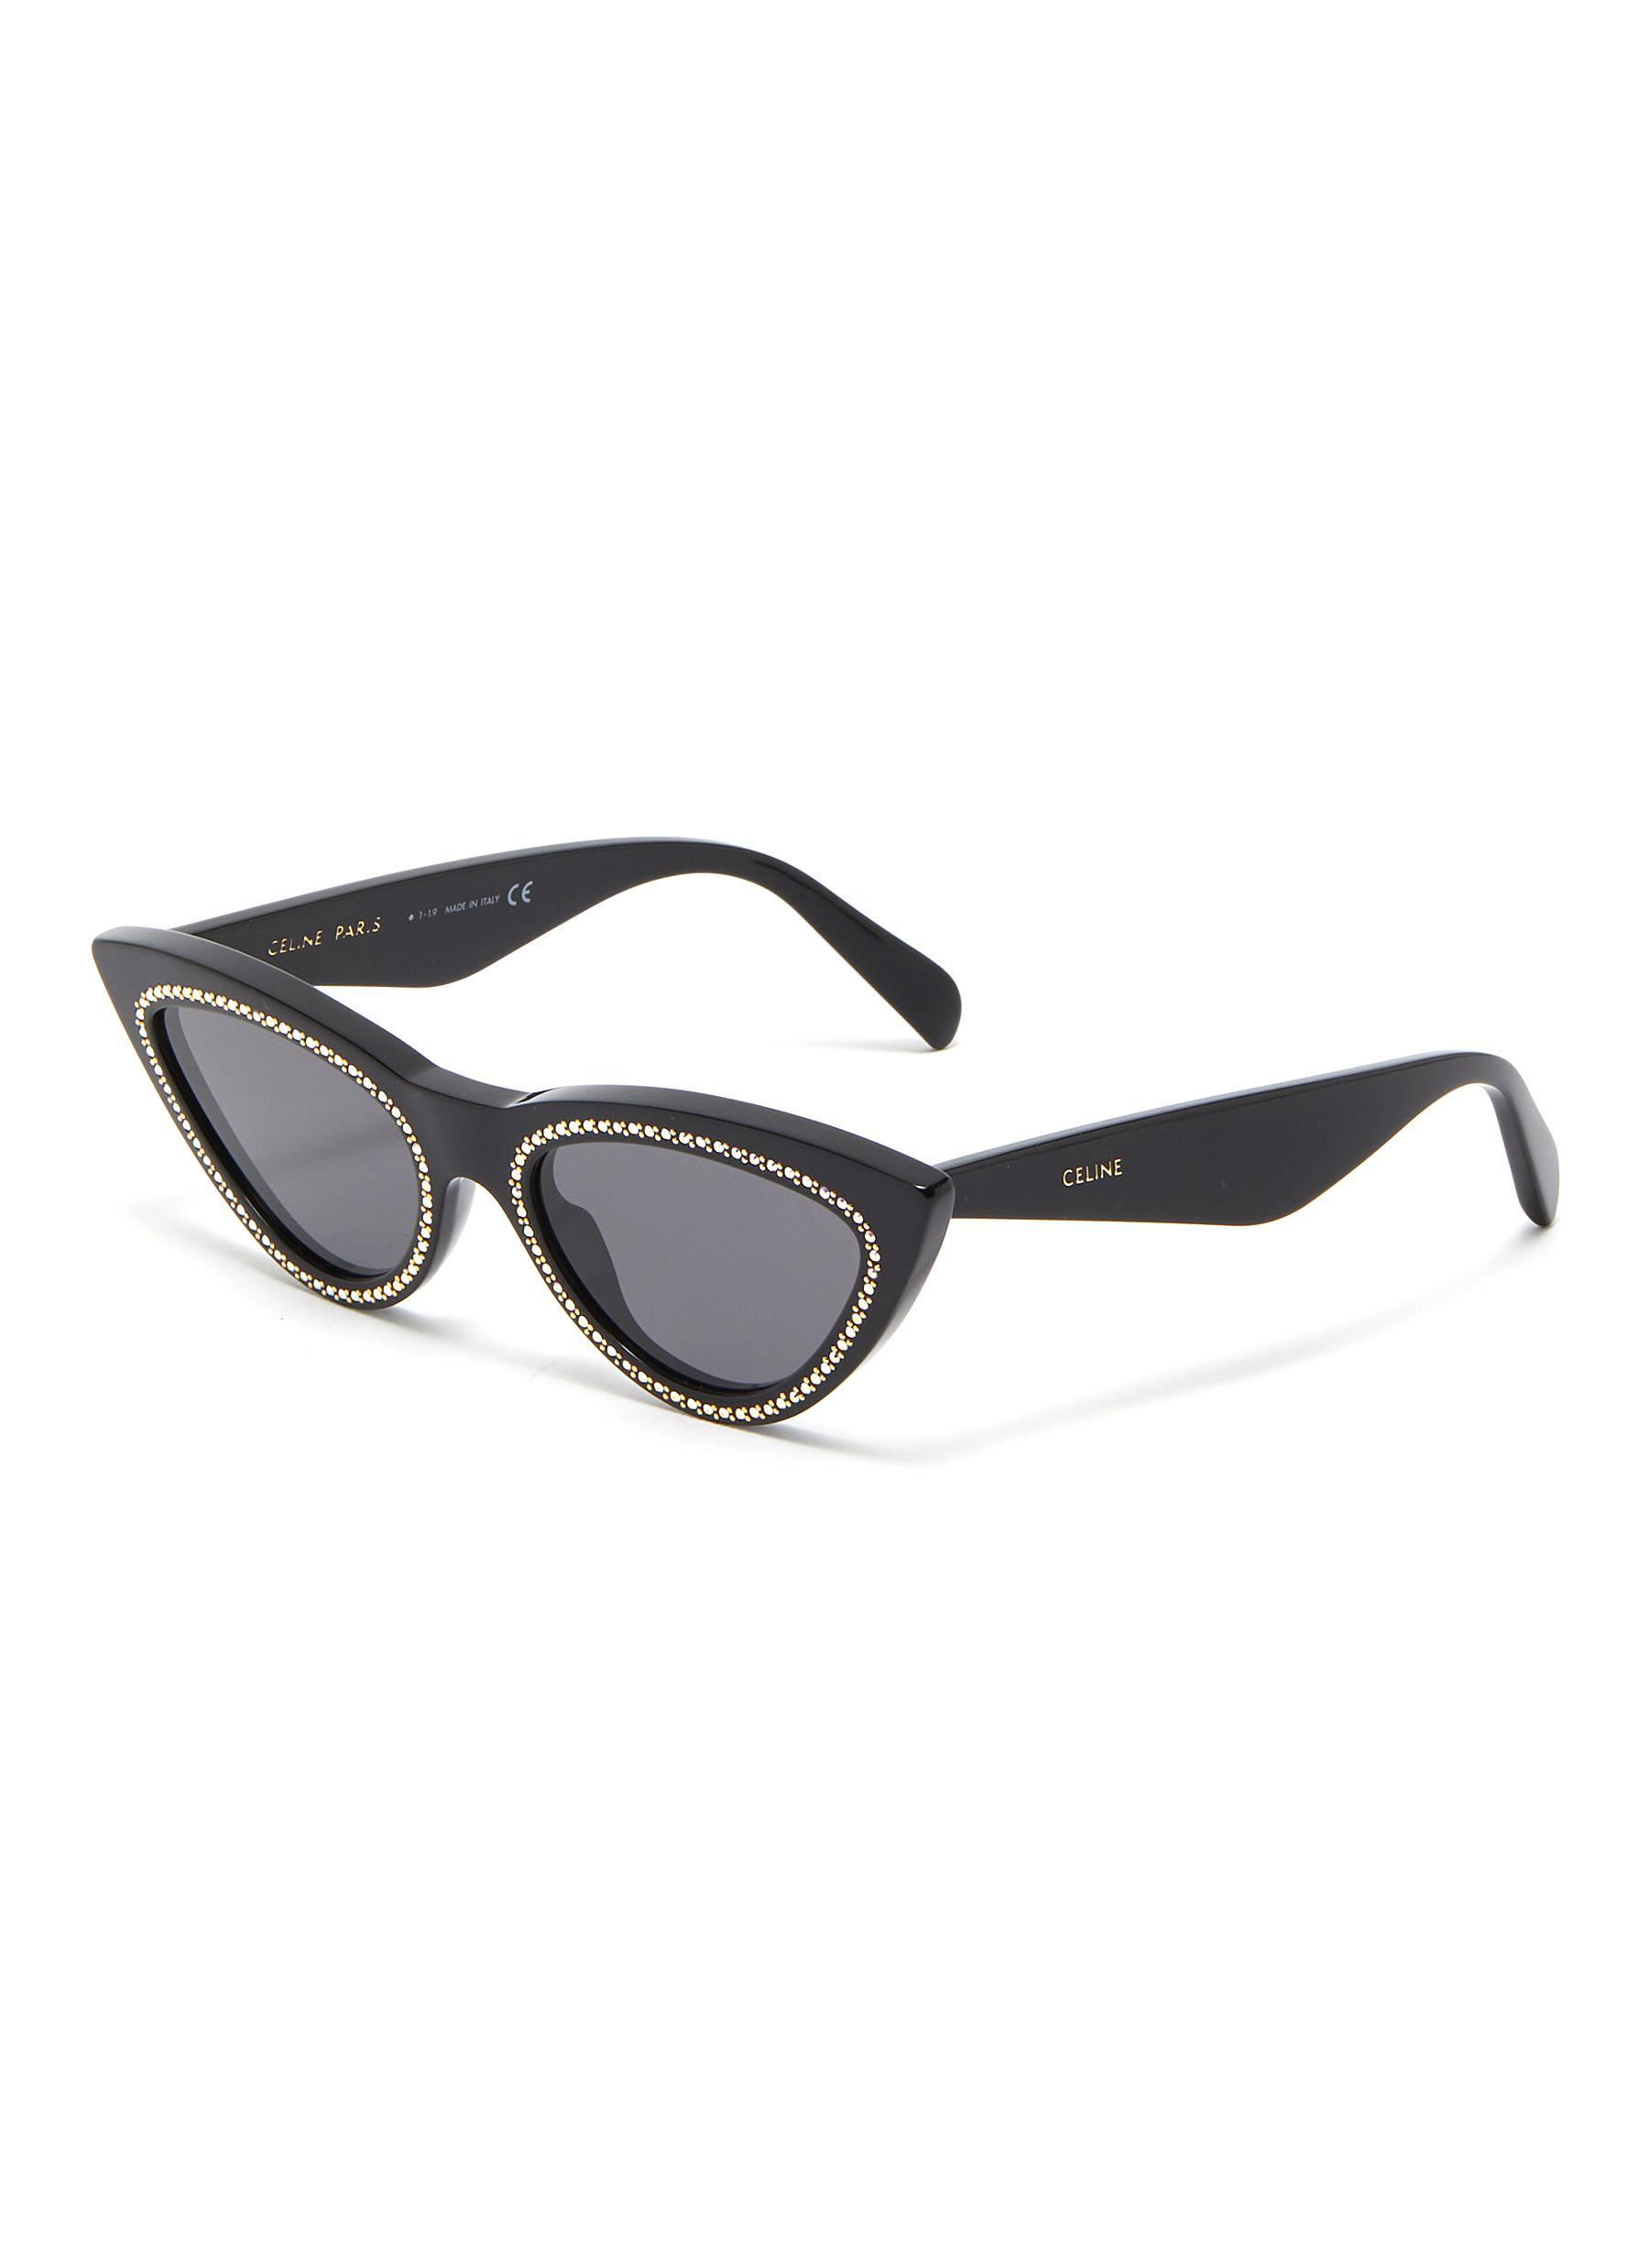 d7a66af3194d Lyst - Céline Strass Rim Acetate Cat Eye Sunglasses in Black